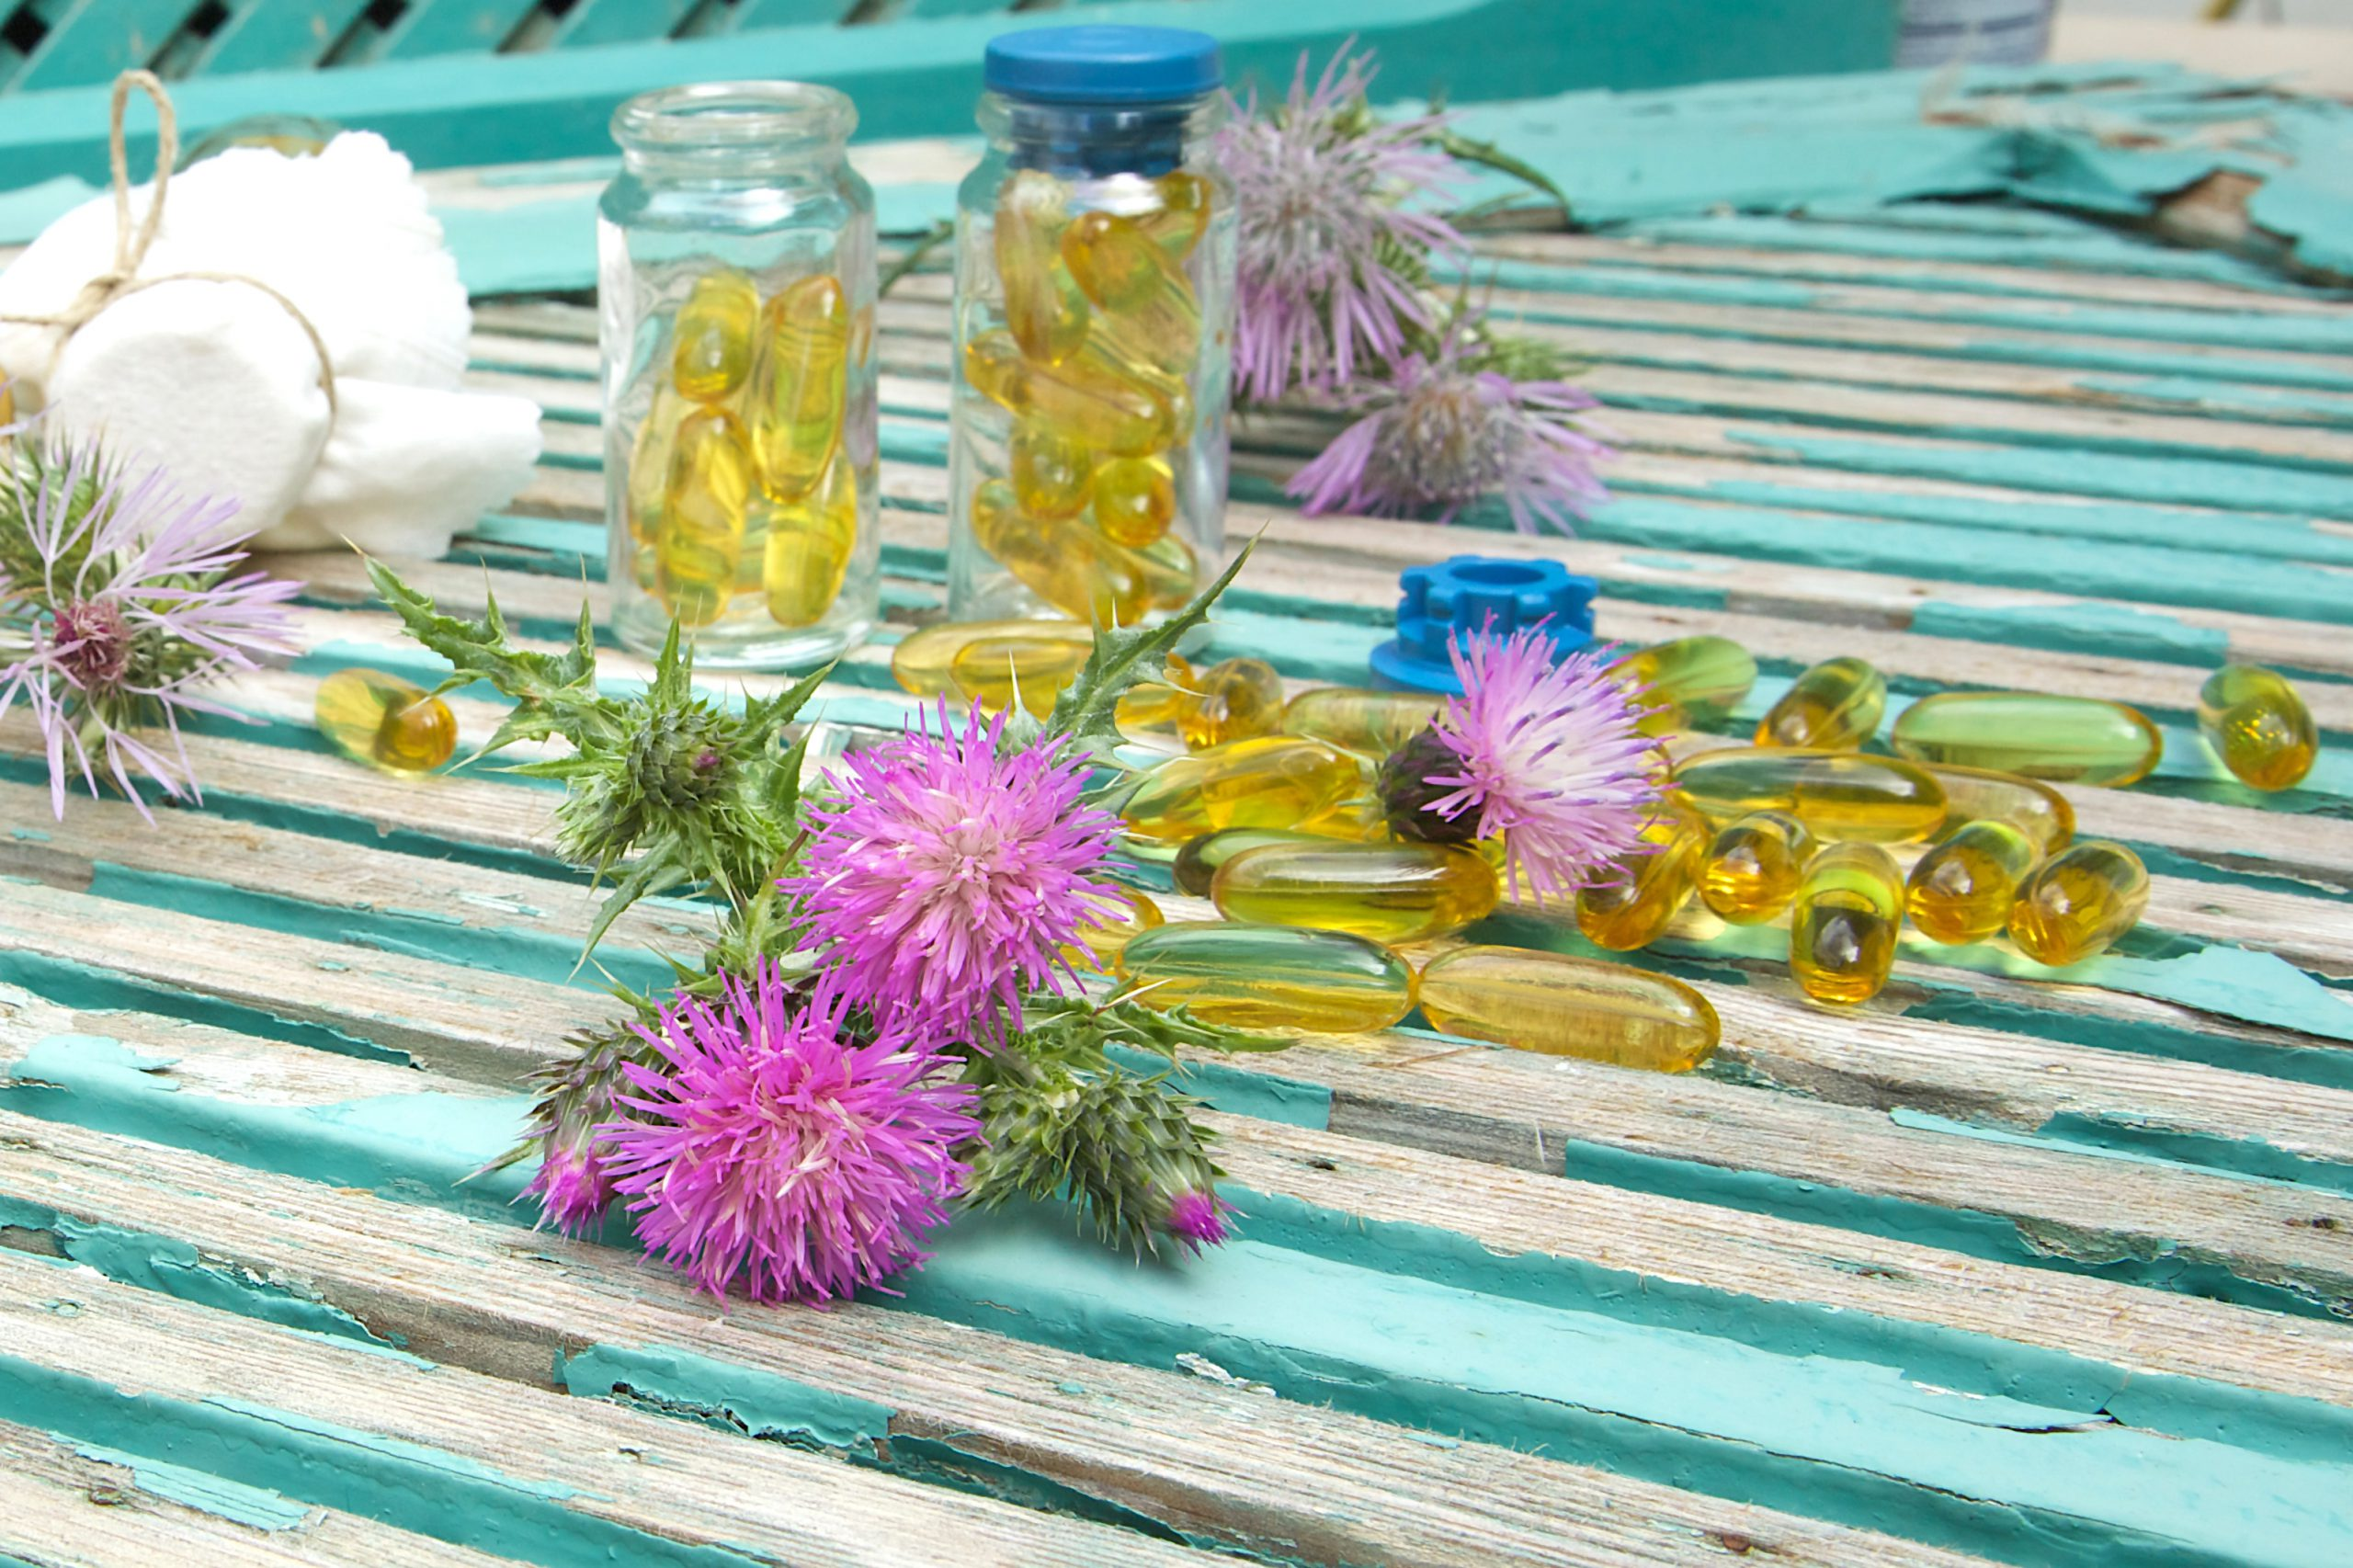 Milk thistle: Liver support for better cholesterol, blood sugar and weight